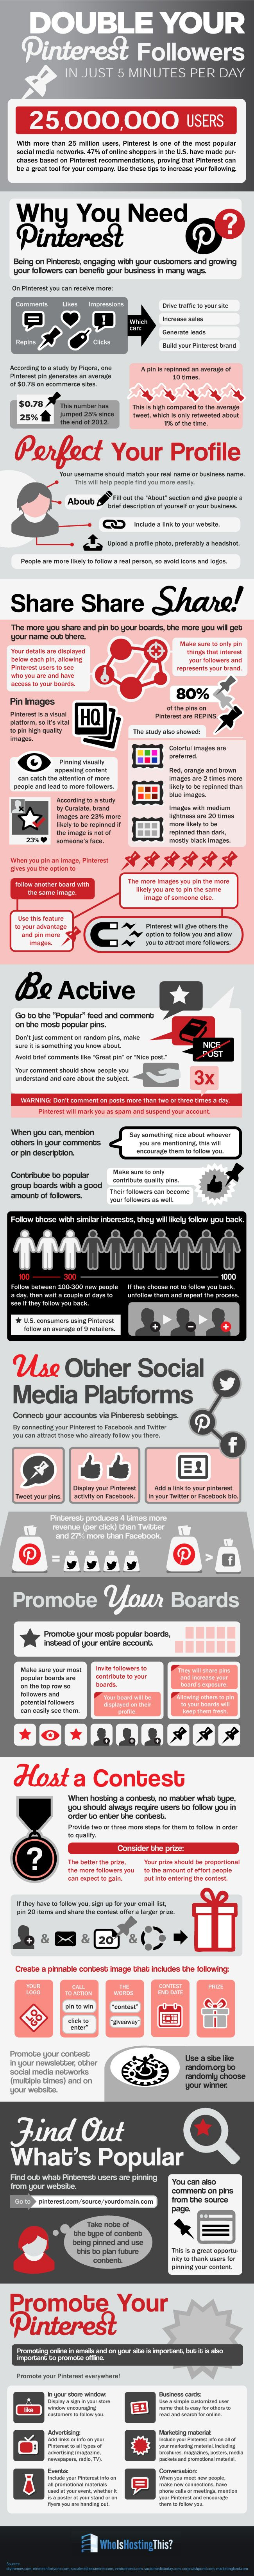 #infografik Tipps & Tricks: Wie man seine #Pinterest Follower verdoppelt – in fünf Minuten am Tag | Kroker's Look @ IT